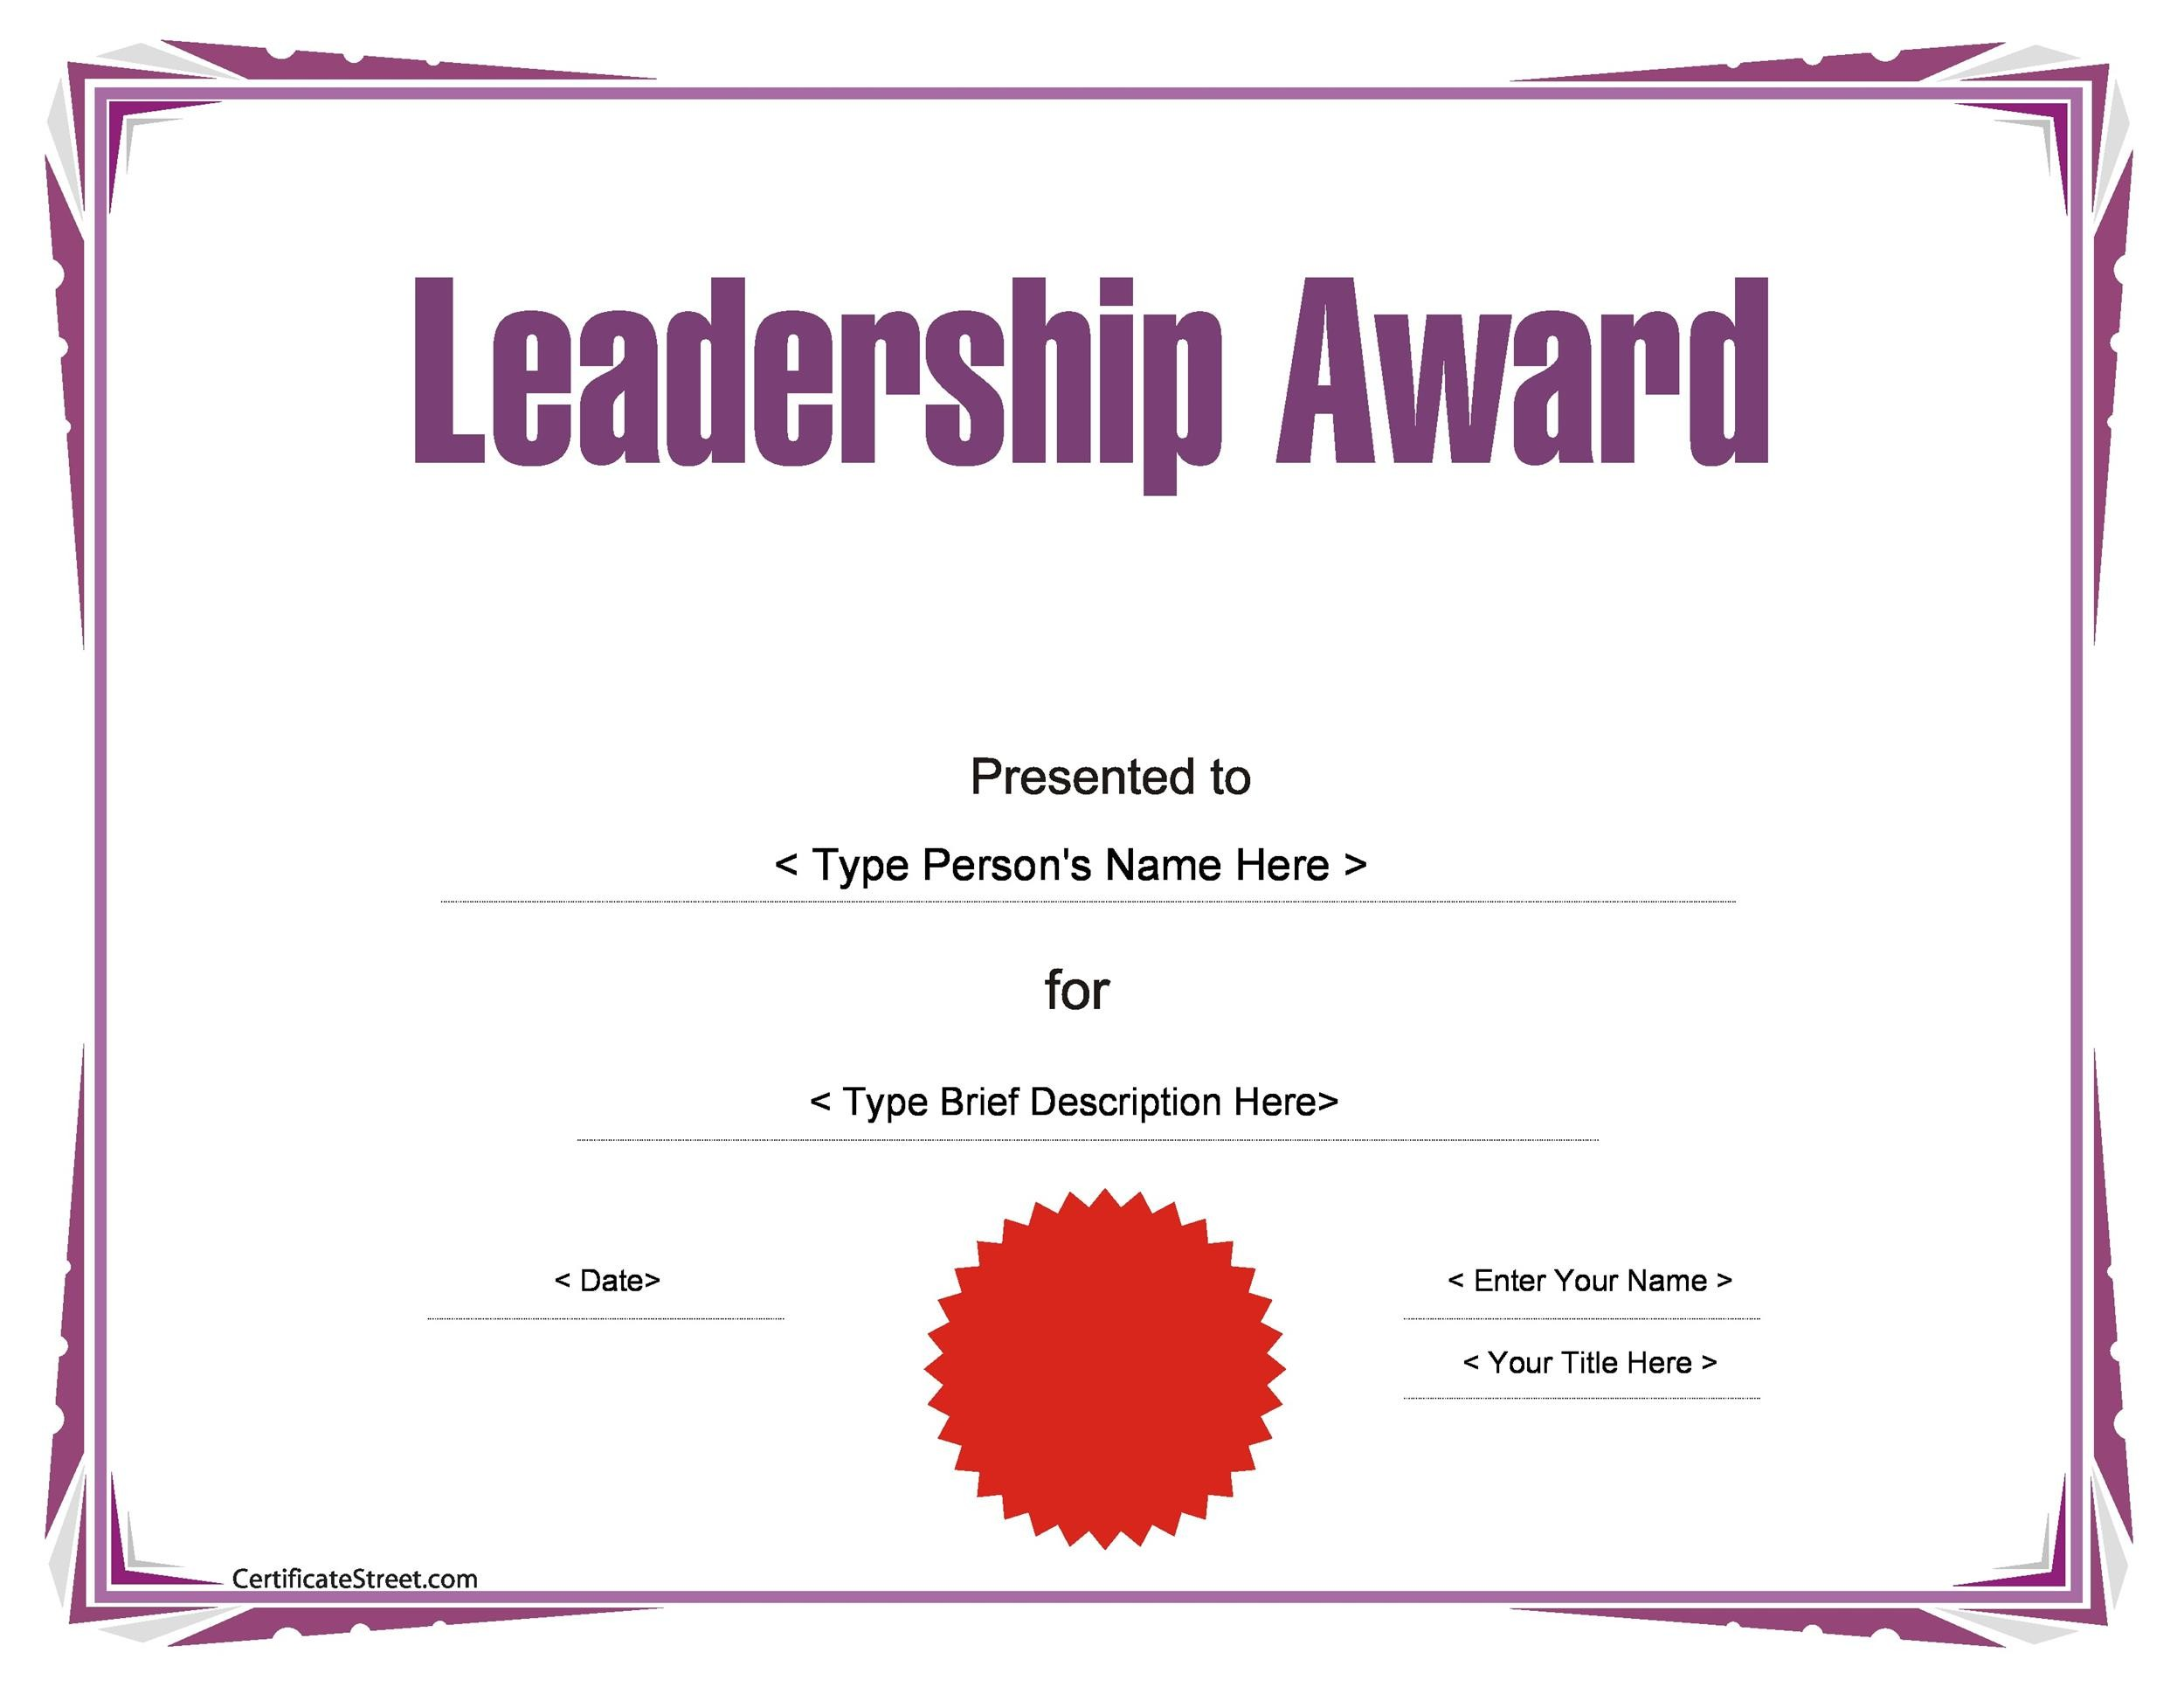 Award Certificate Samples  Editable Certificate Templates